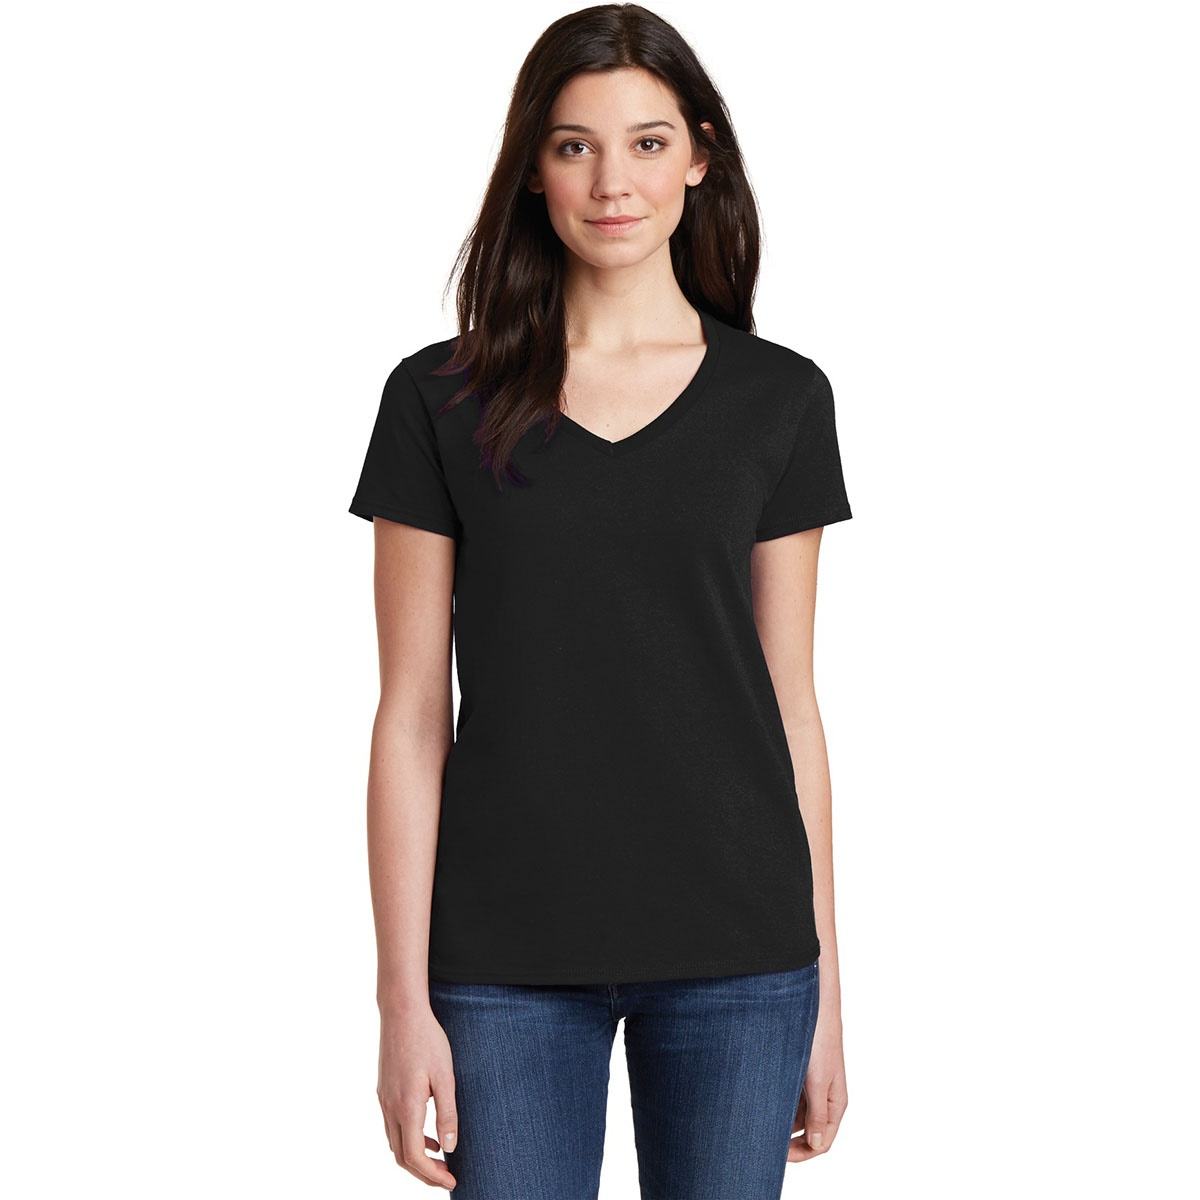 Gildan 5v00l ladies heavy cotton v neck t shirt black V neck black t shirt